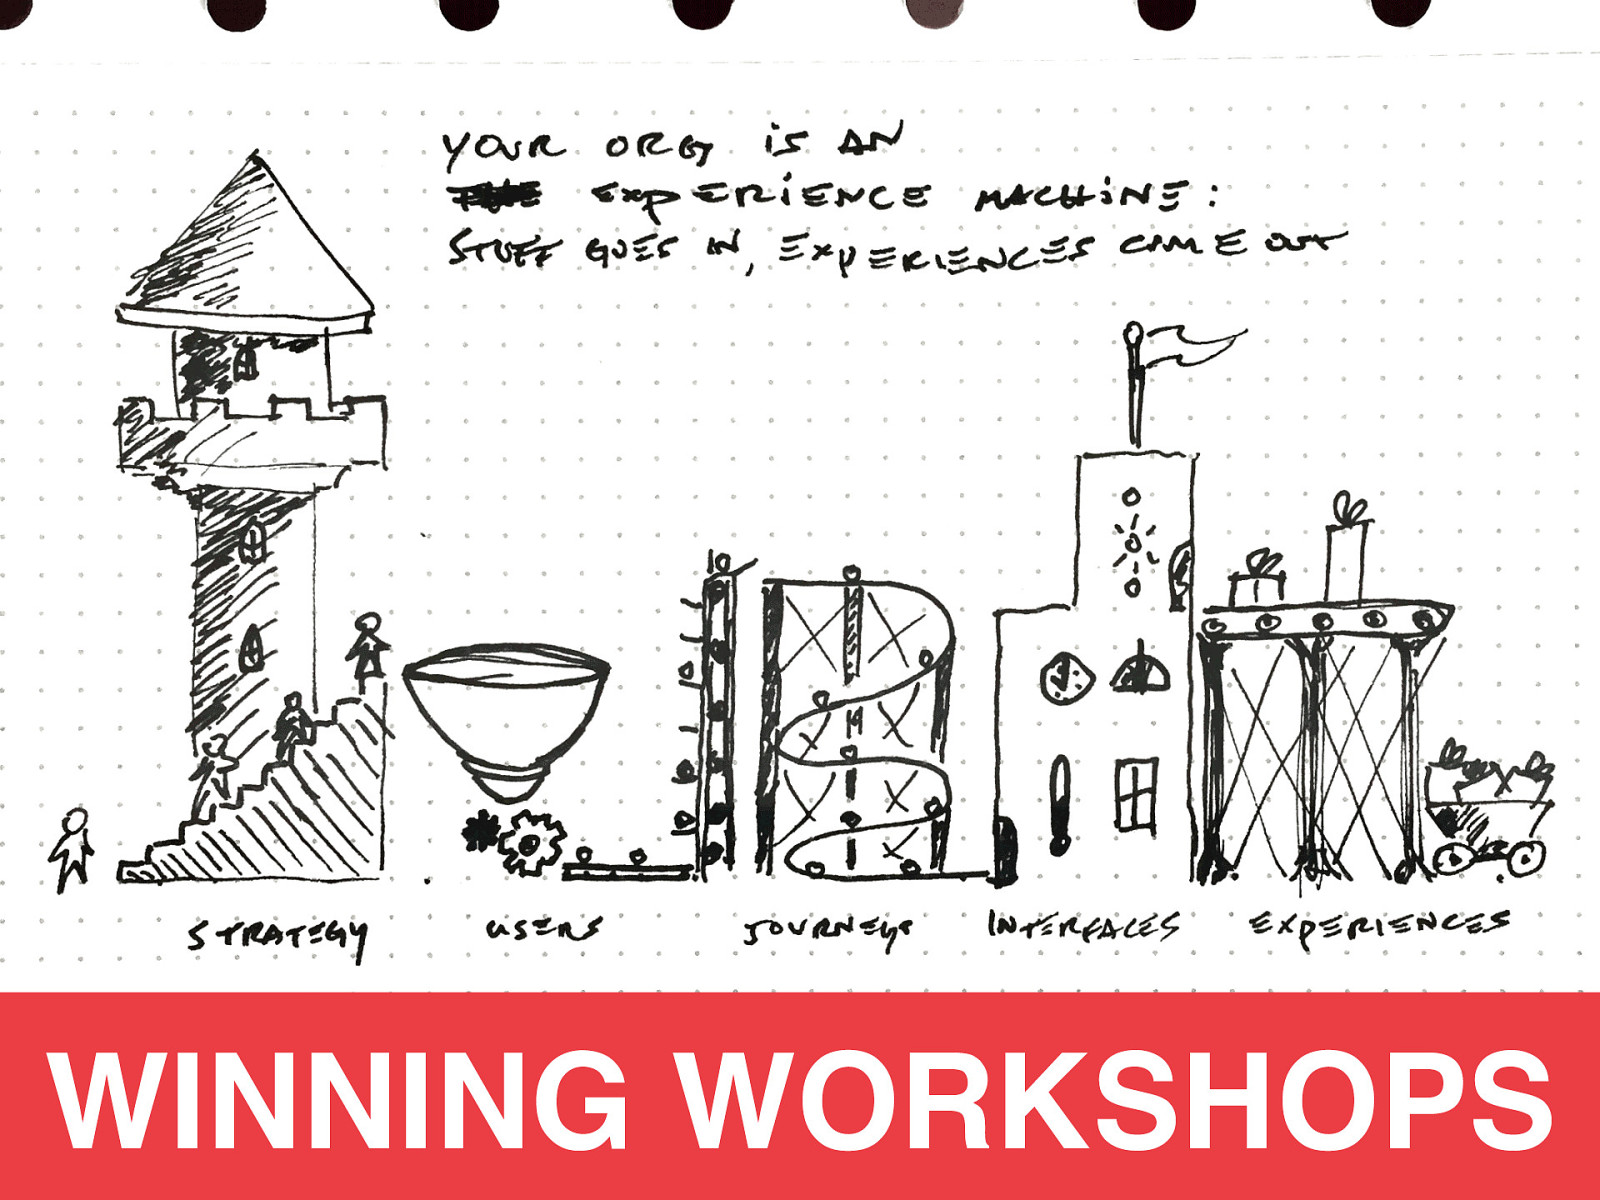 Winning Workshops: How to get the most from people